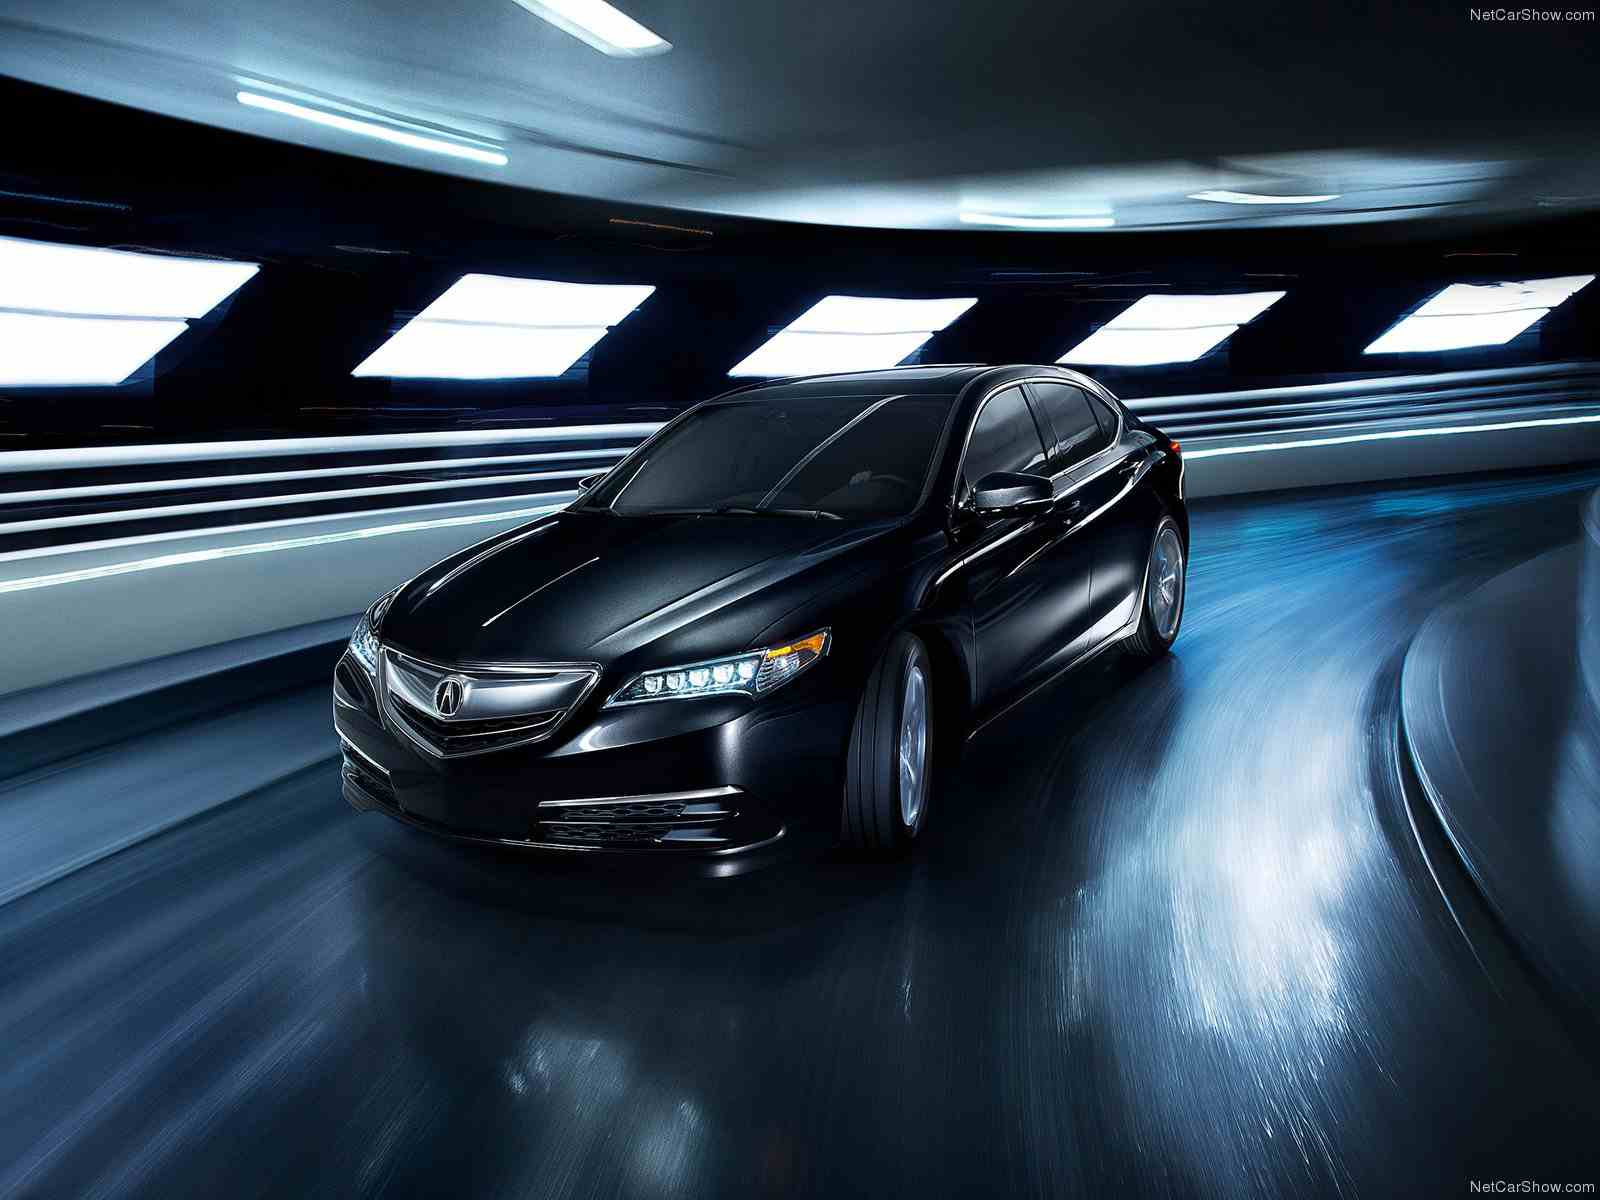 HD 2015 Acura TLX Background